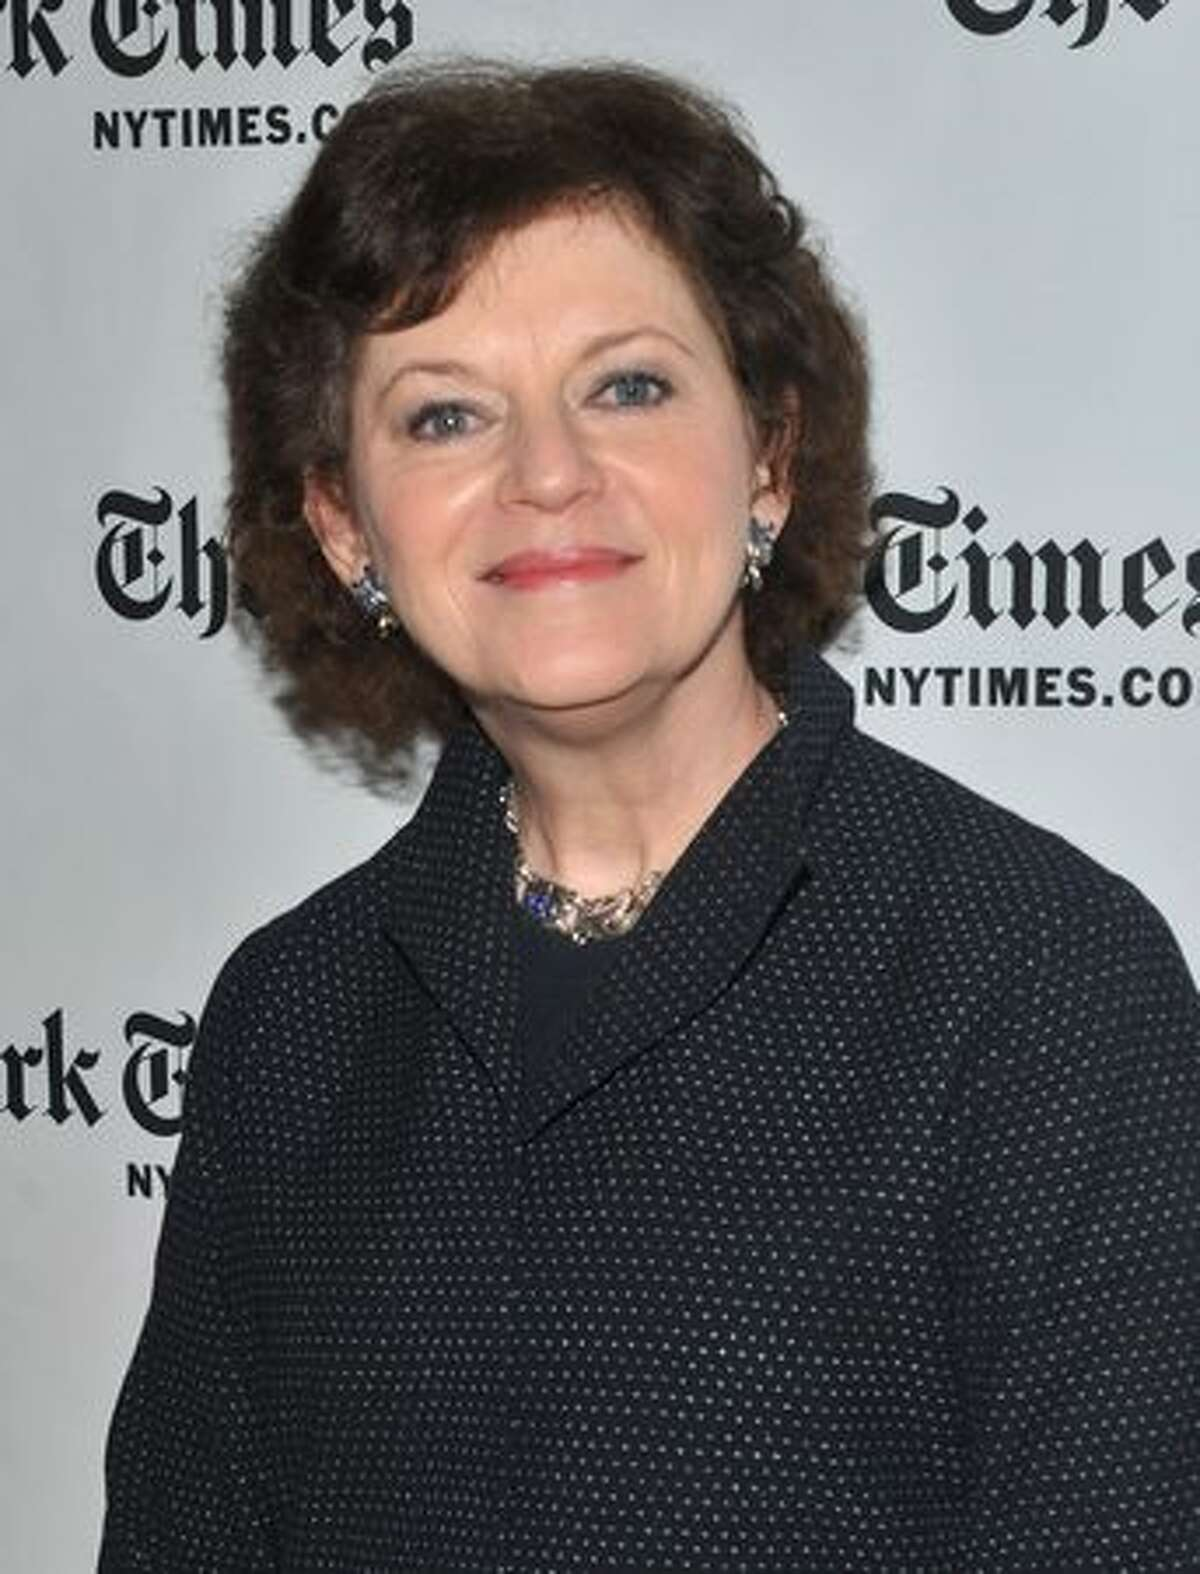 New York Times film and literary critic Janet Maslin attends the 10th Annual New York Times Arts & Leisure Weekend photocall at the Times Center in New York City.